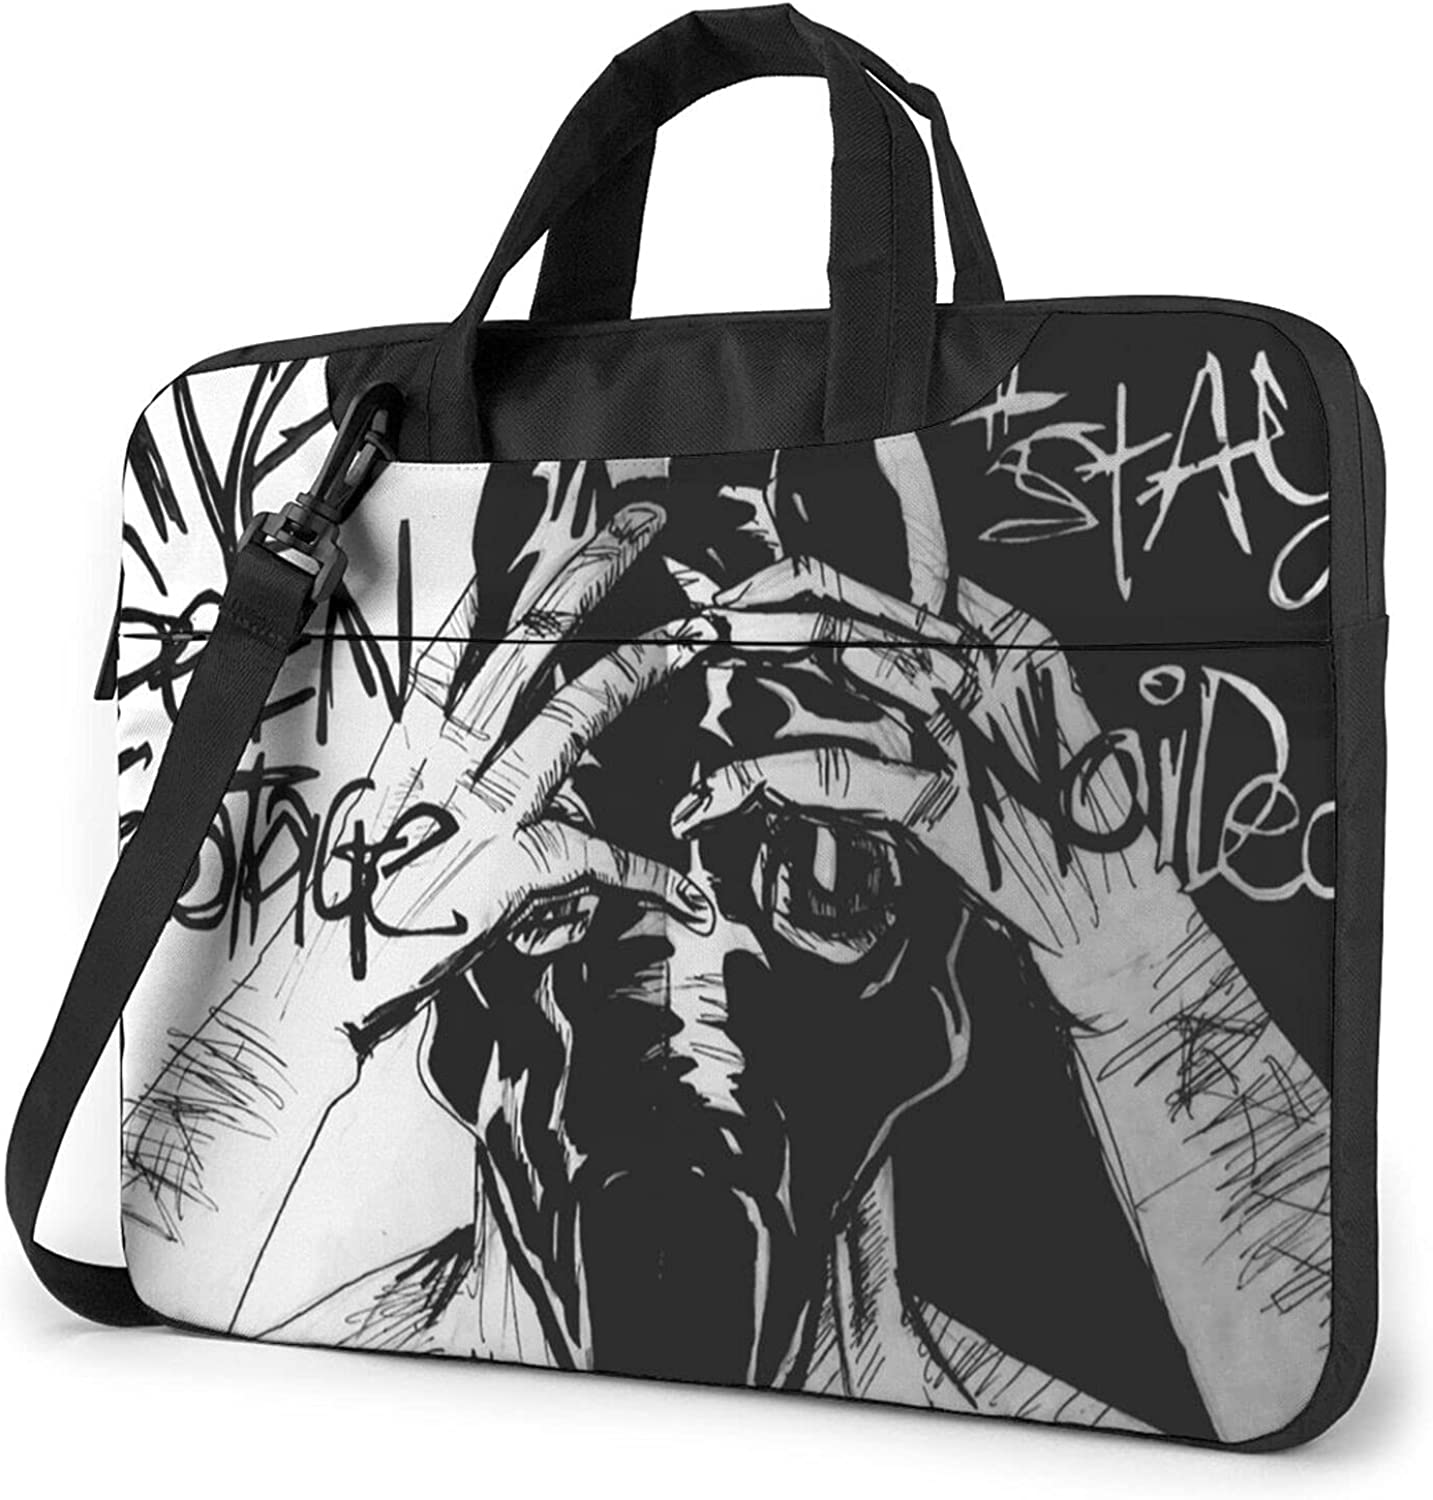 Laptop Fashionable Sleeve Case New product type Computer Death Grips Arts Bag